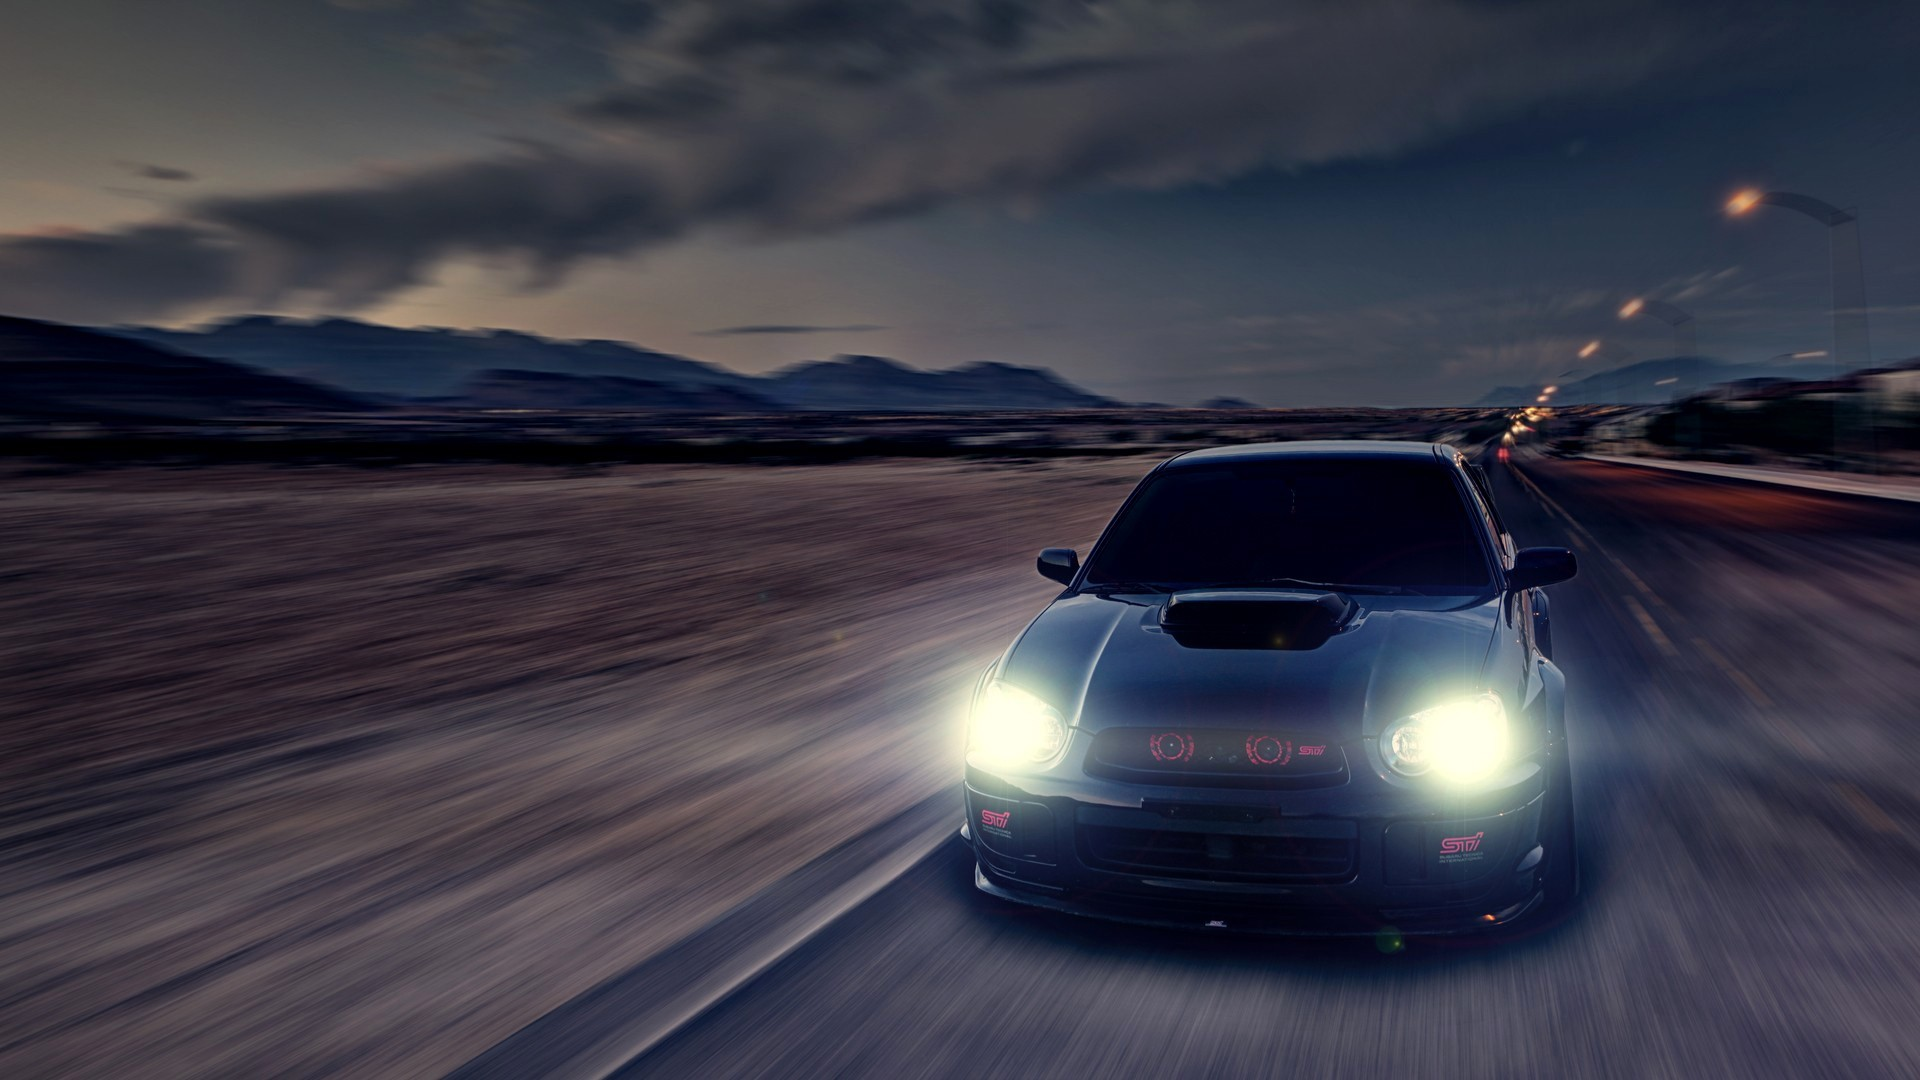 Jdm Wallpapers Hd 73 Images